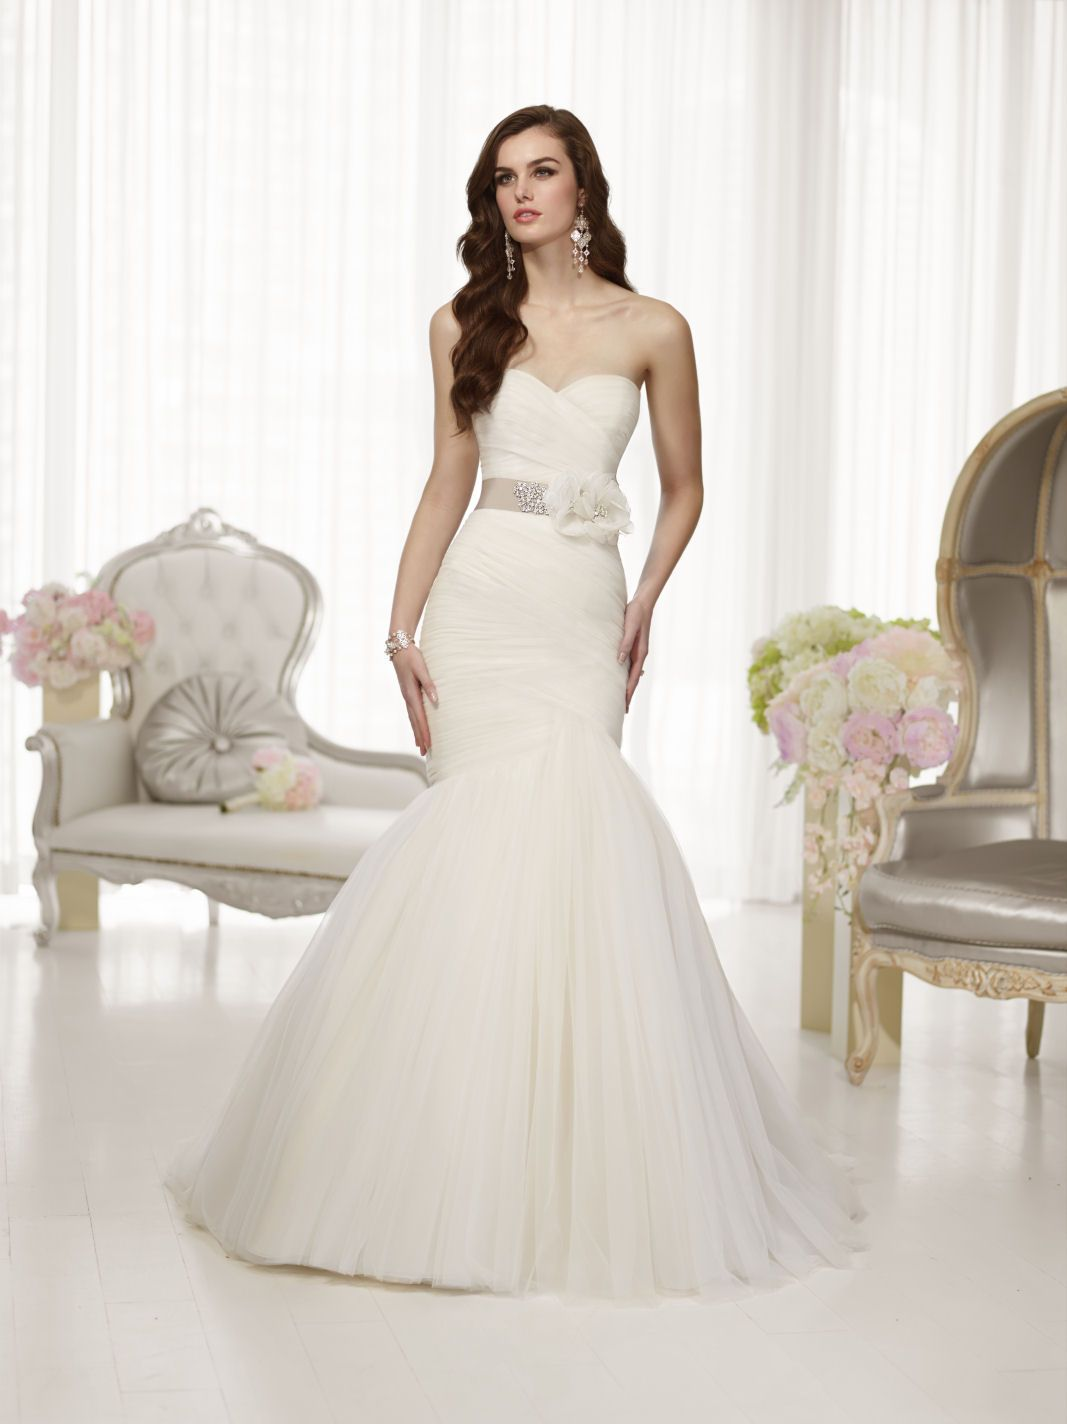 Essense Of Australia This Designer Tulle Trumpet Gown Offers Non Stop Glamour Thanks To Layers Crisscrossed Ruching On Its Figure Flattering Bodice